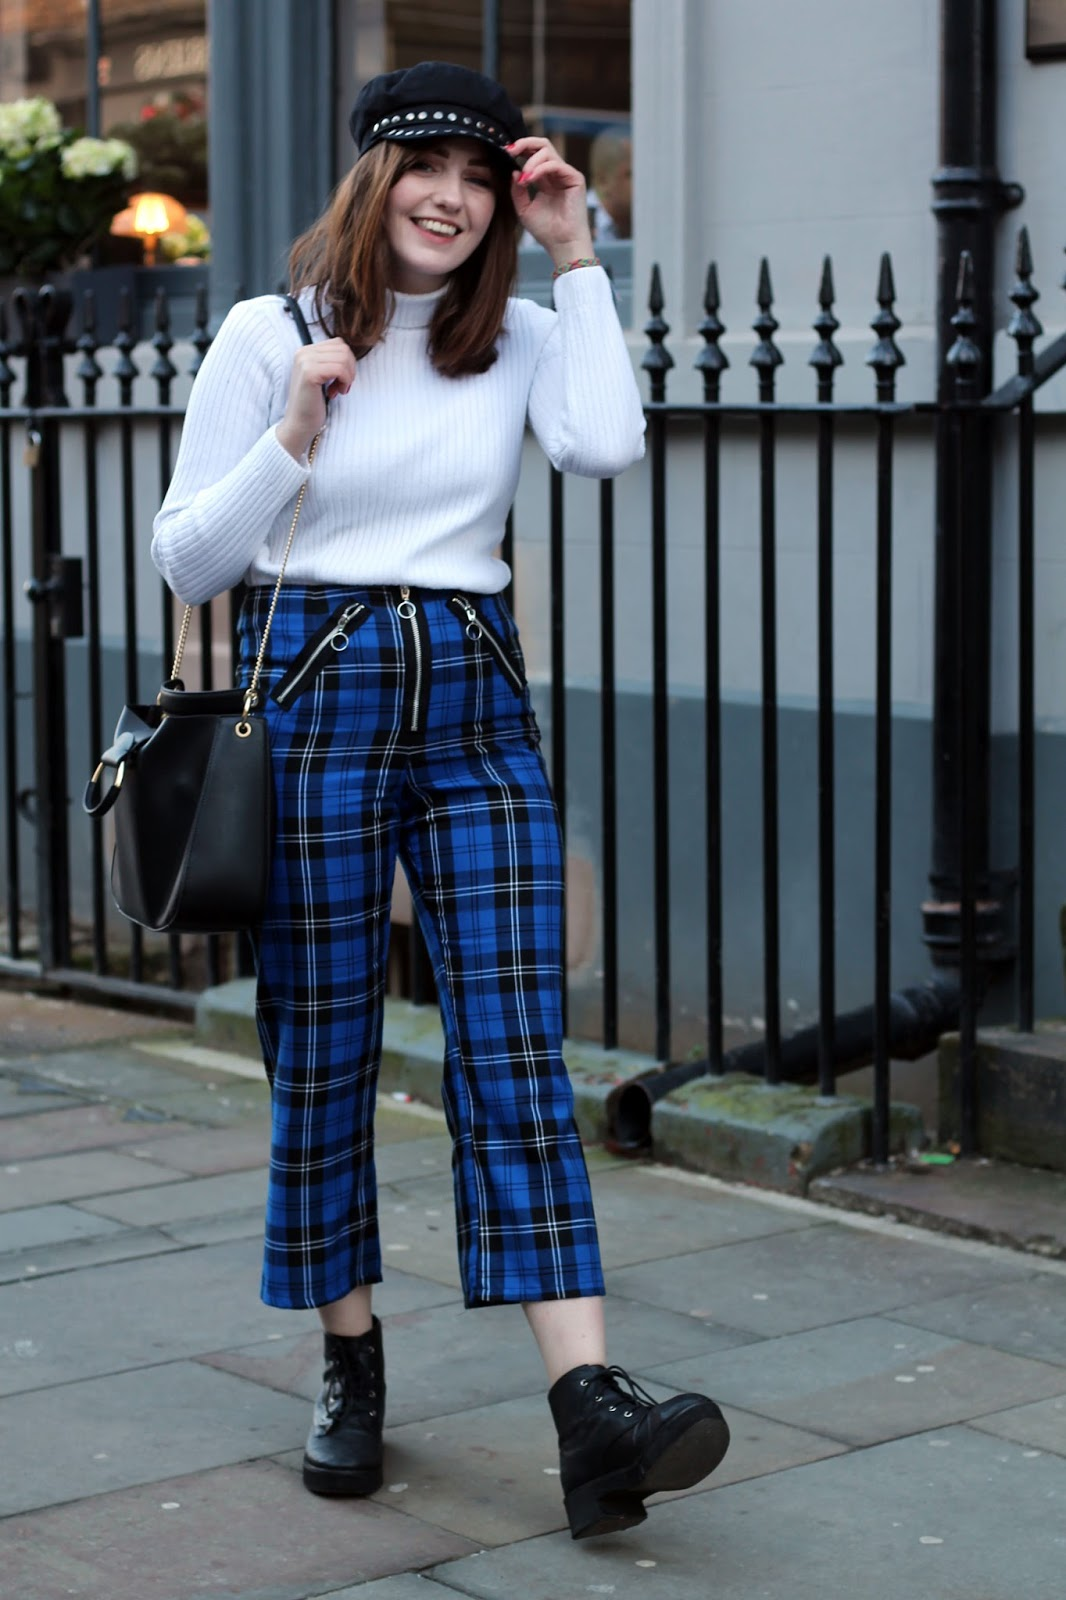 UK style blogger in tartan kick flare trousers